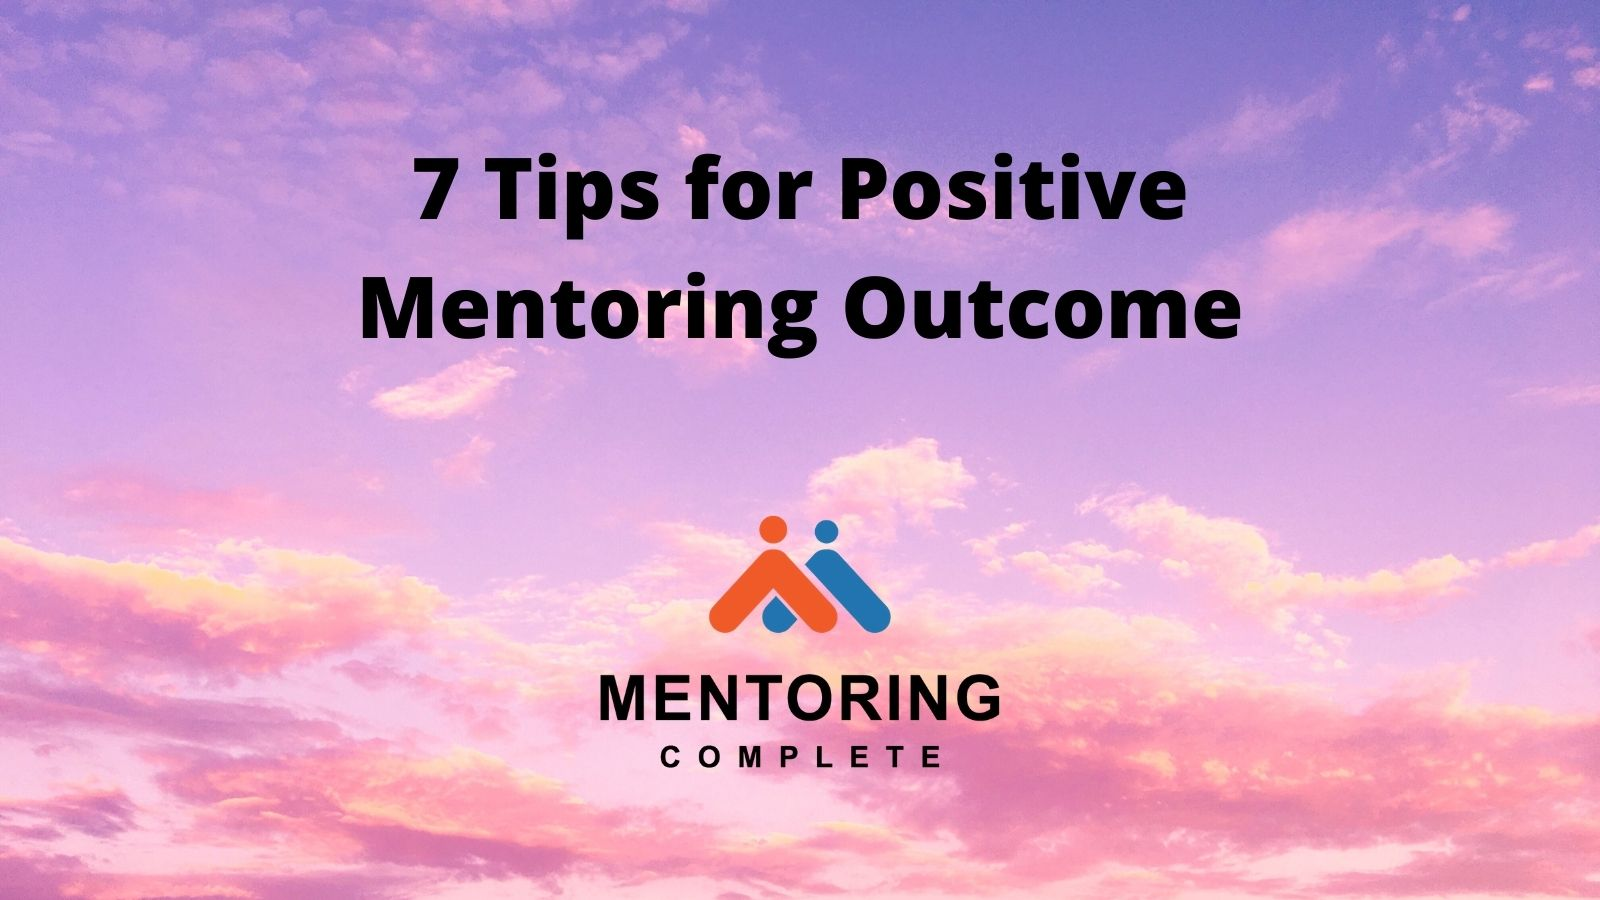 7 Tips for Positive Mentoring Outcome